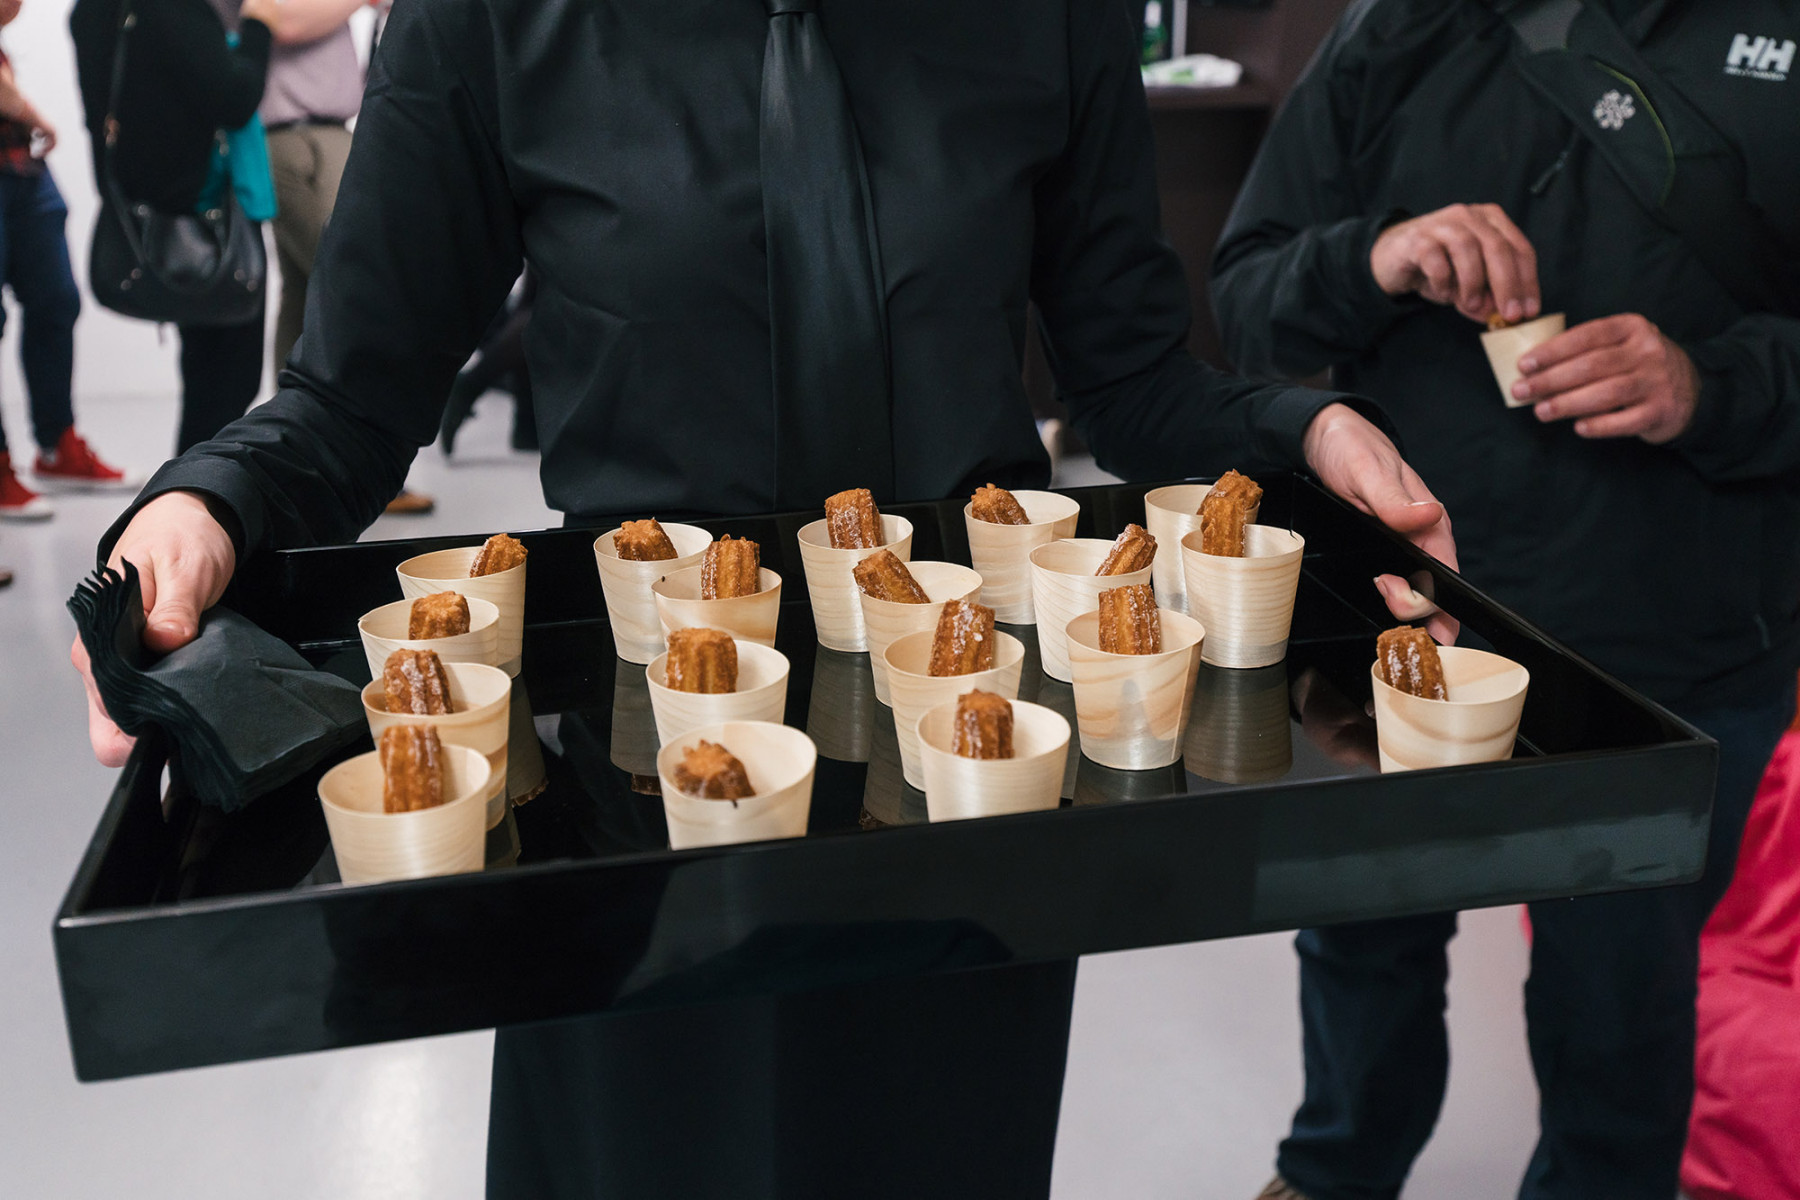 Adobe Creative Cloud Event Churros